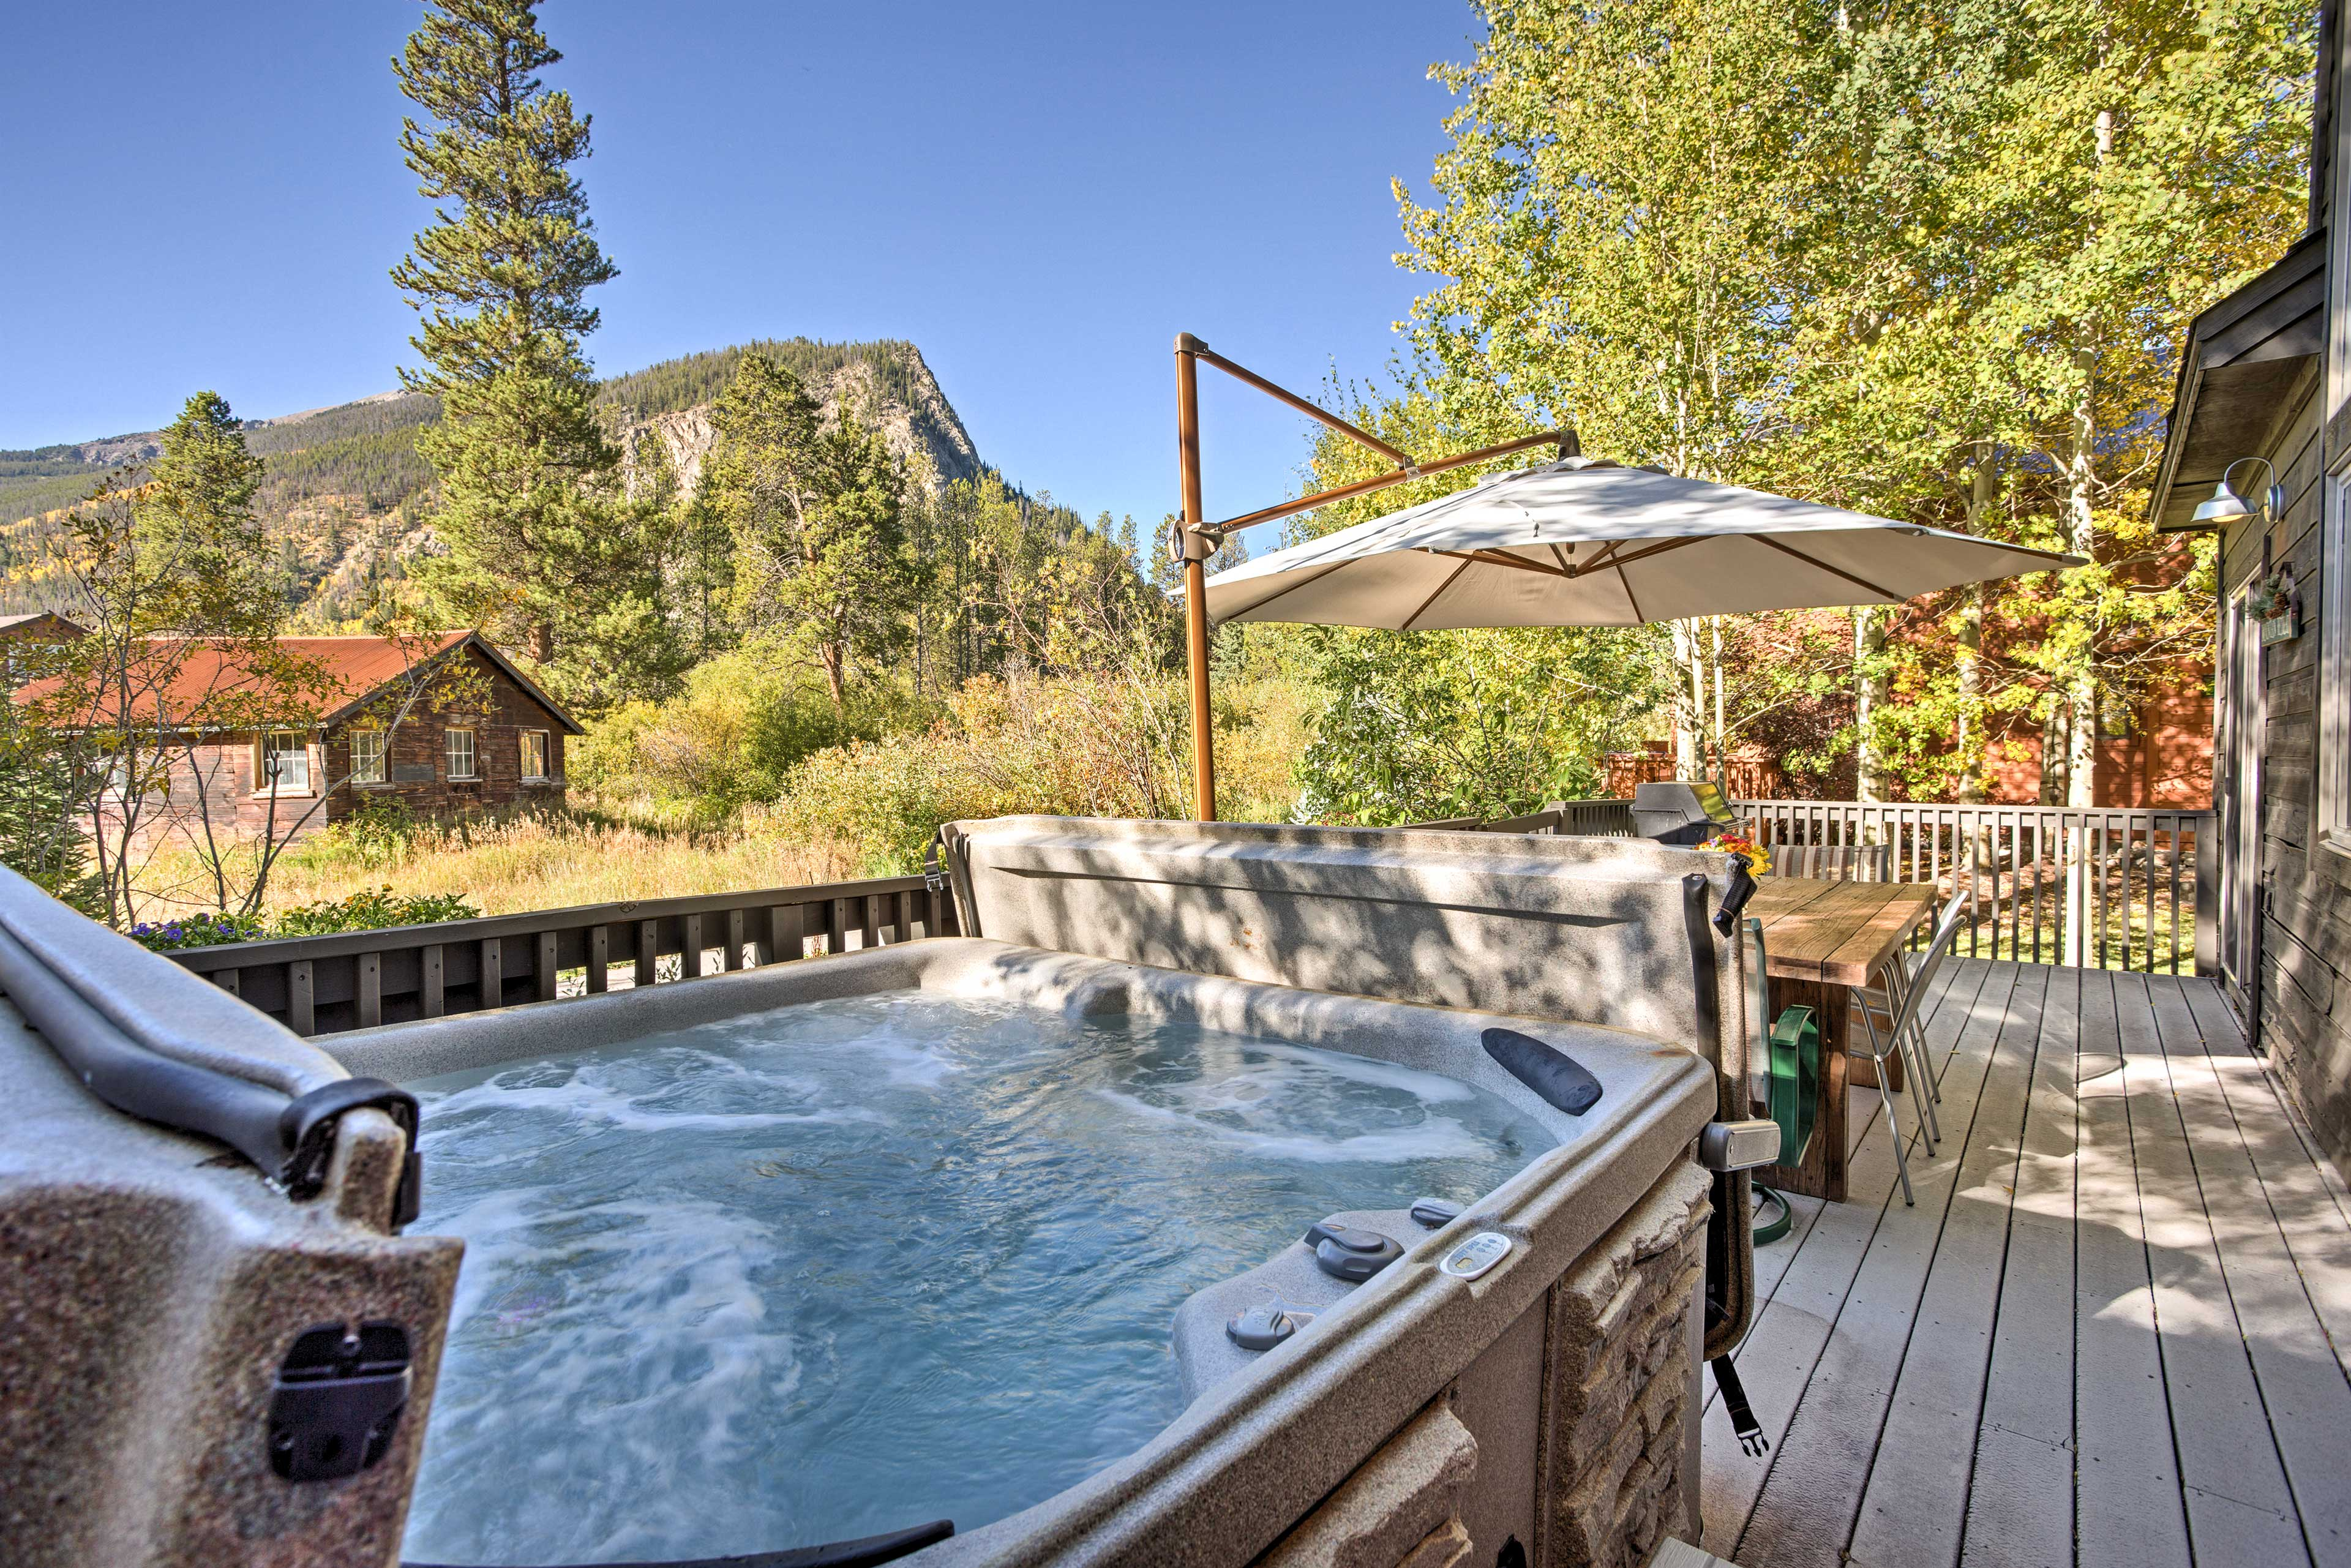 The home features a spacious back deck with a private hot tub, sauna and mountain views.